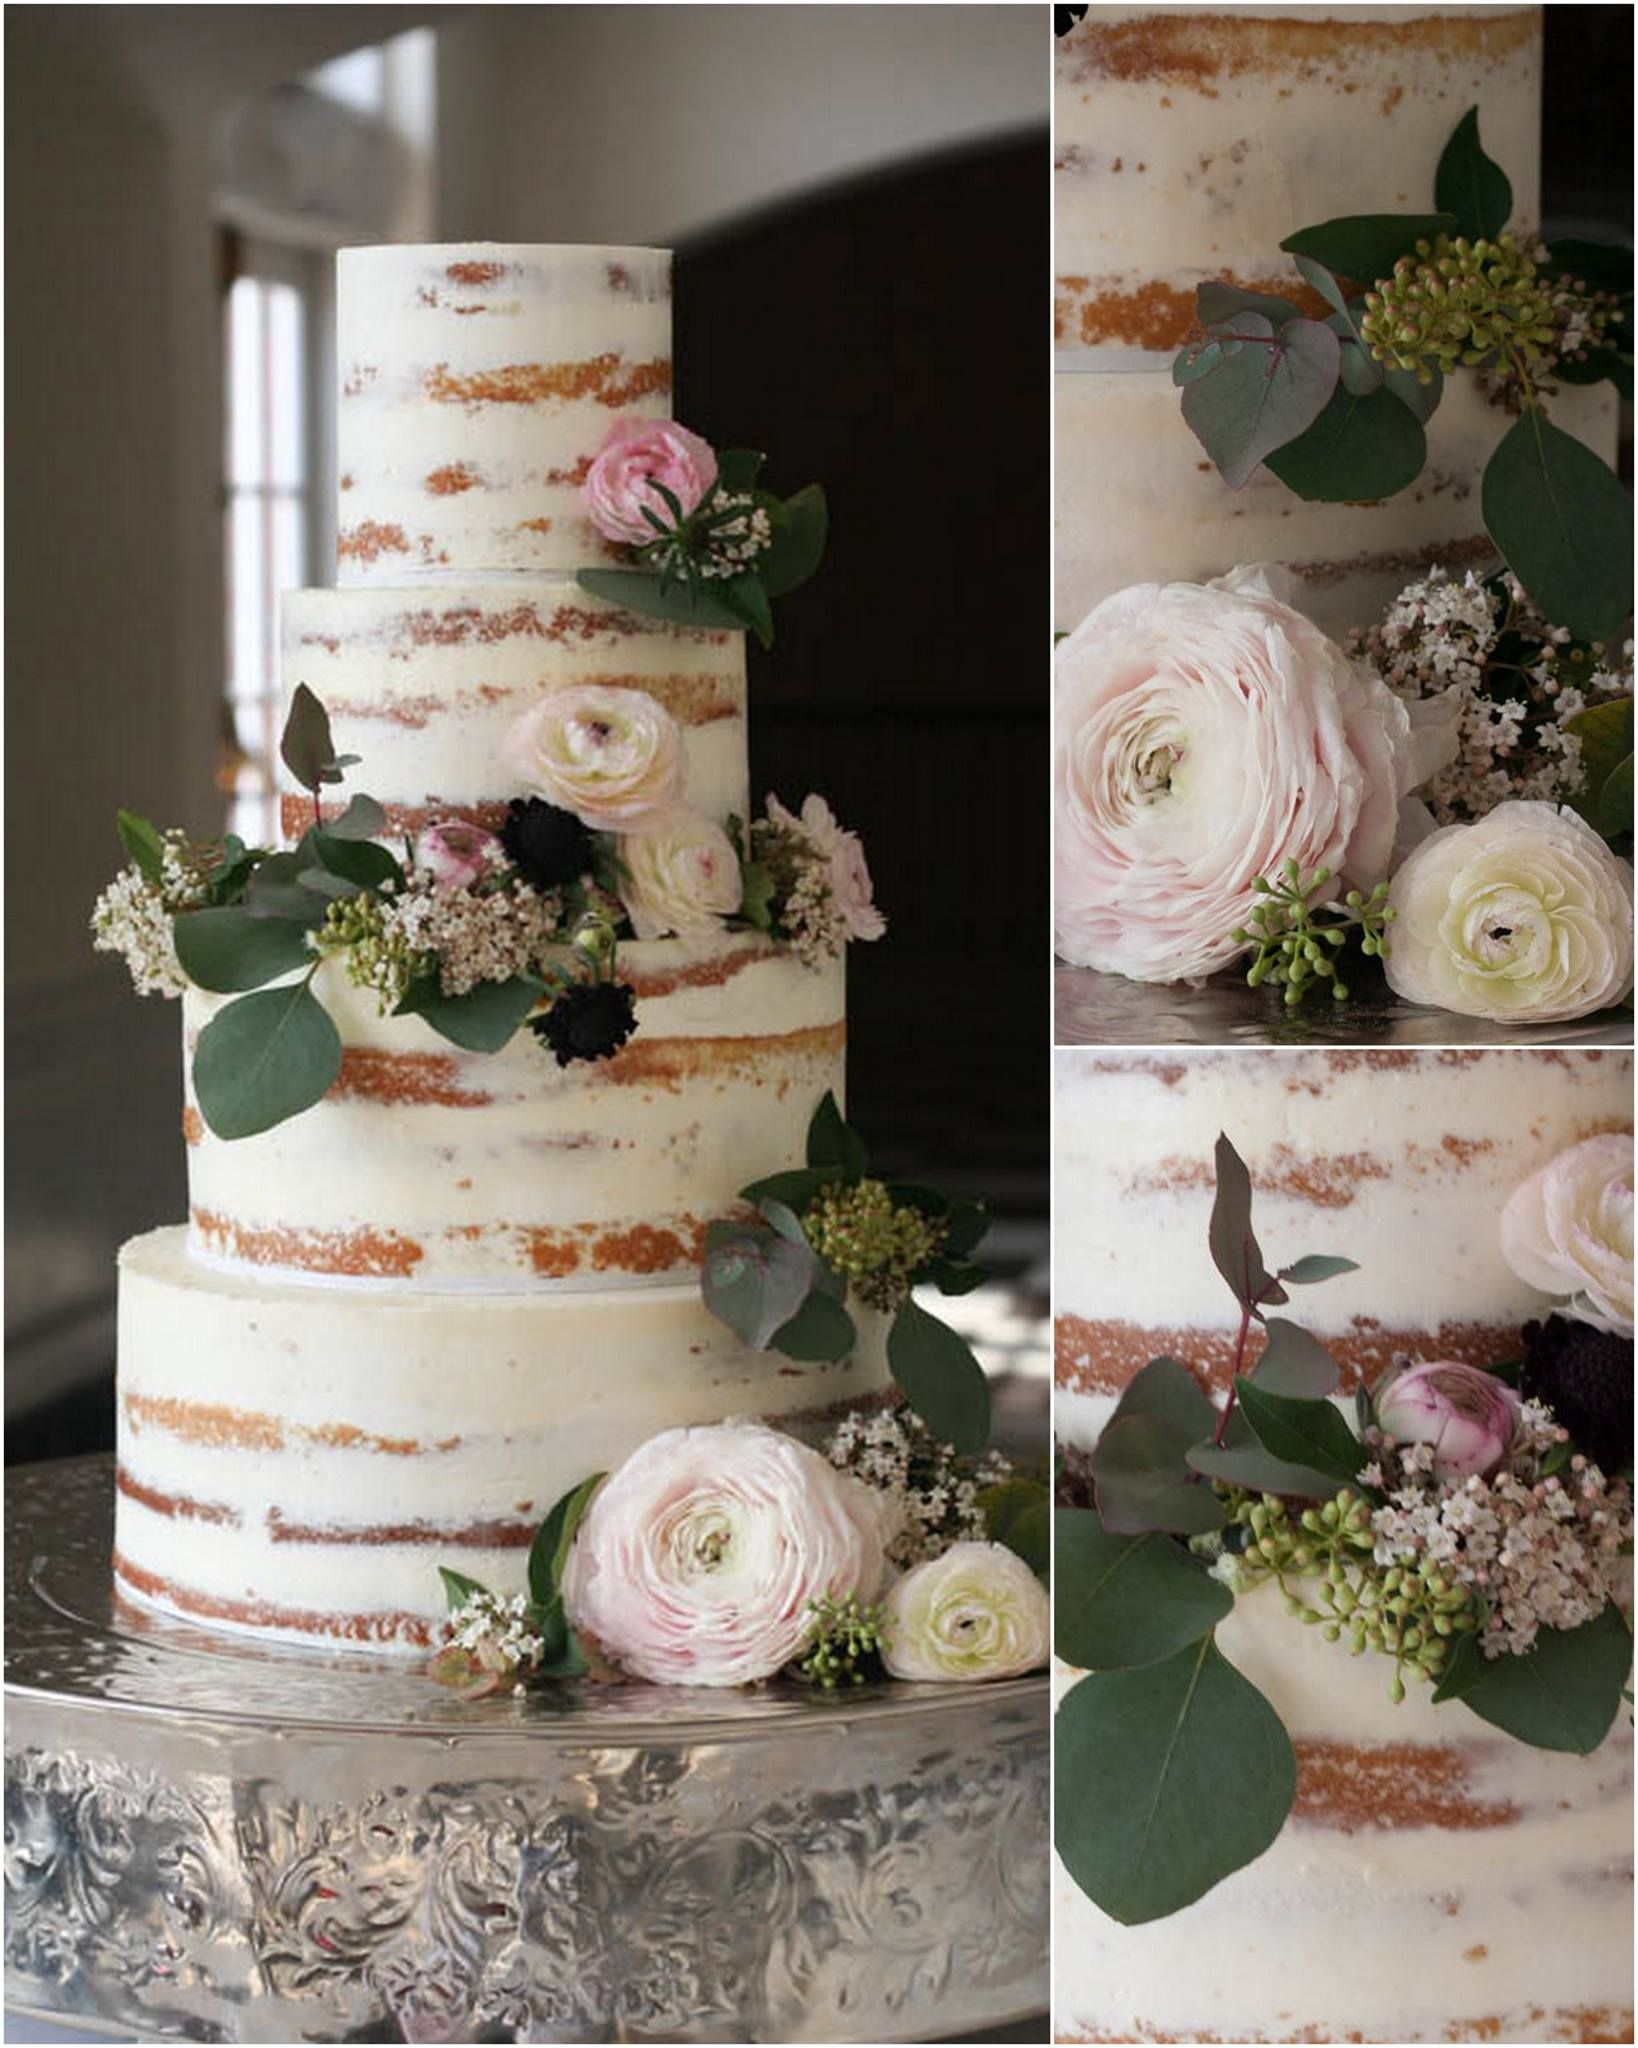 Cake pictured by Erica O'Brien   10 Steps To Building A Better Naked Cake   Erin Gardner   Craftsy